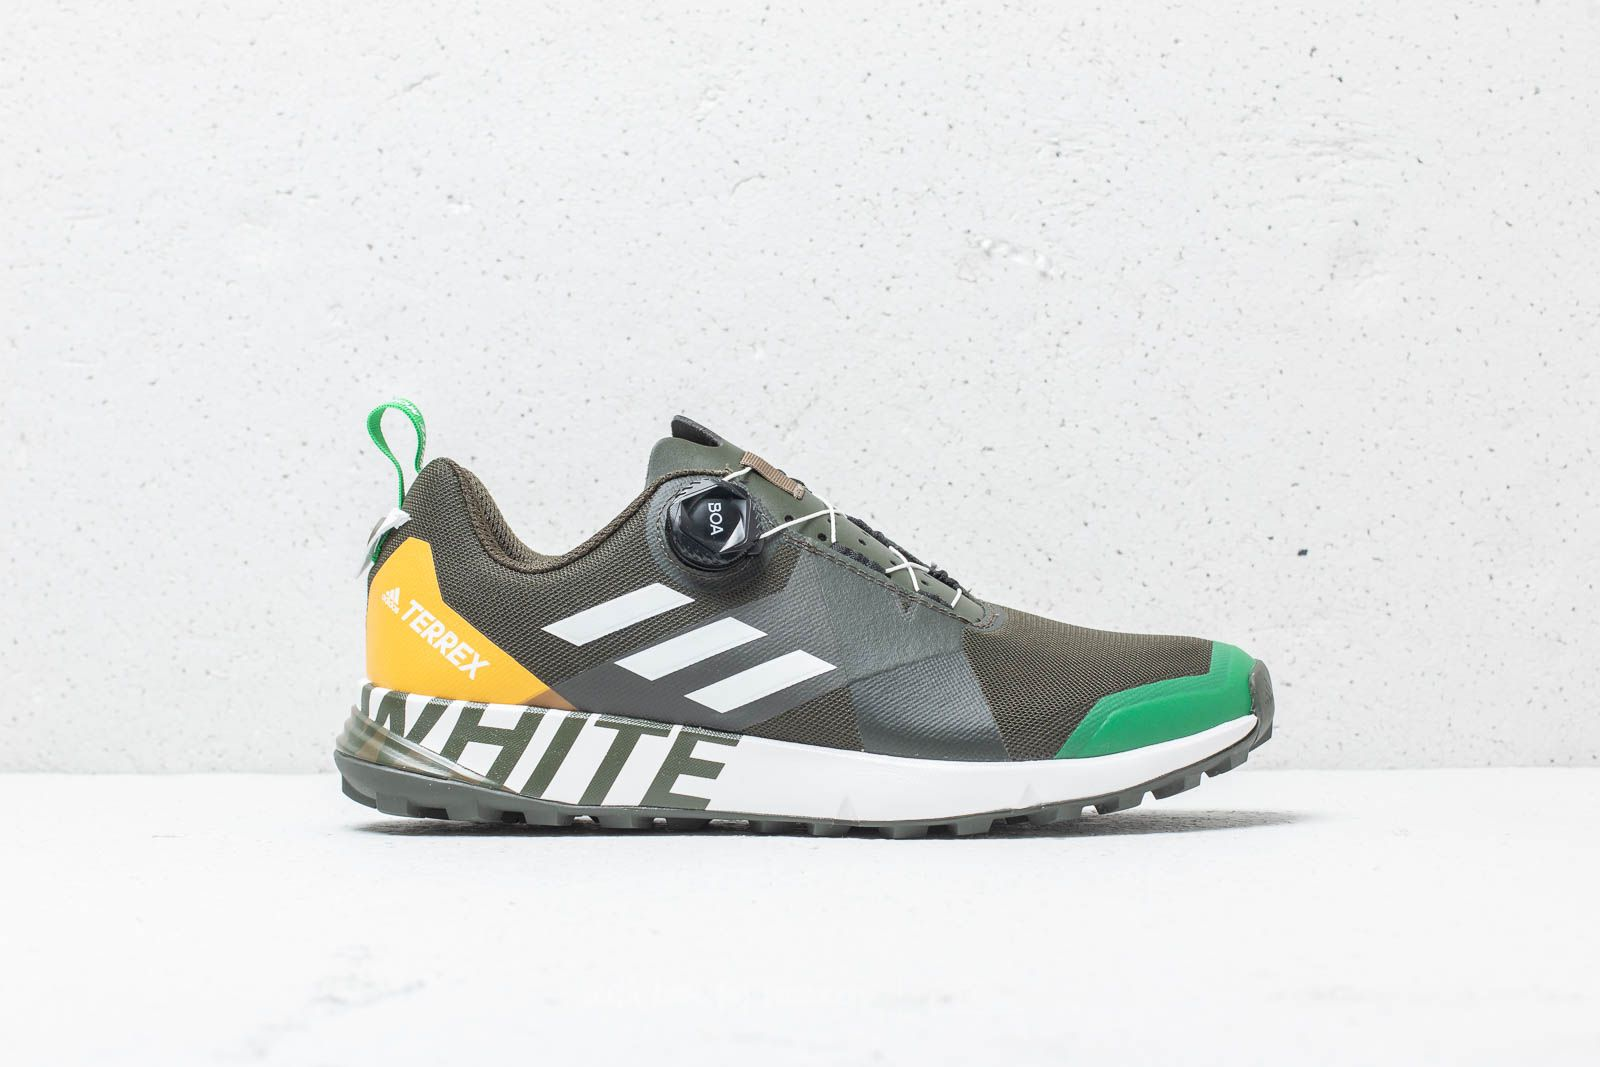 d512a099105b adidas x White Mountaineering Terrex Two BOA Khaki  Cloud White at a great  price 103